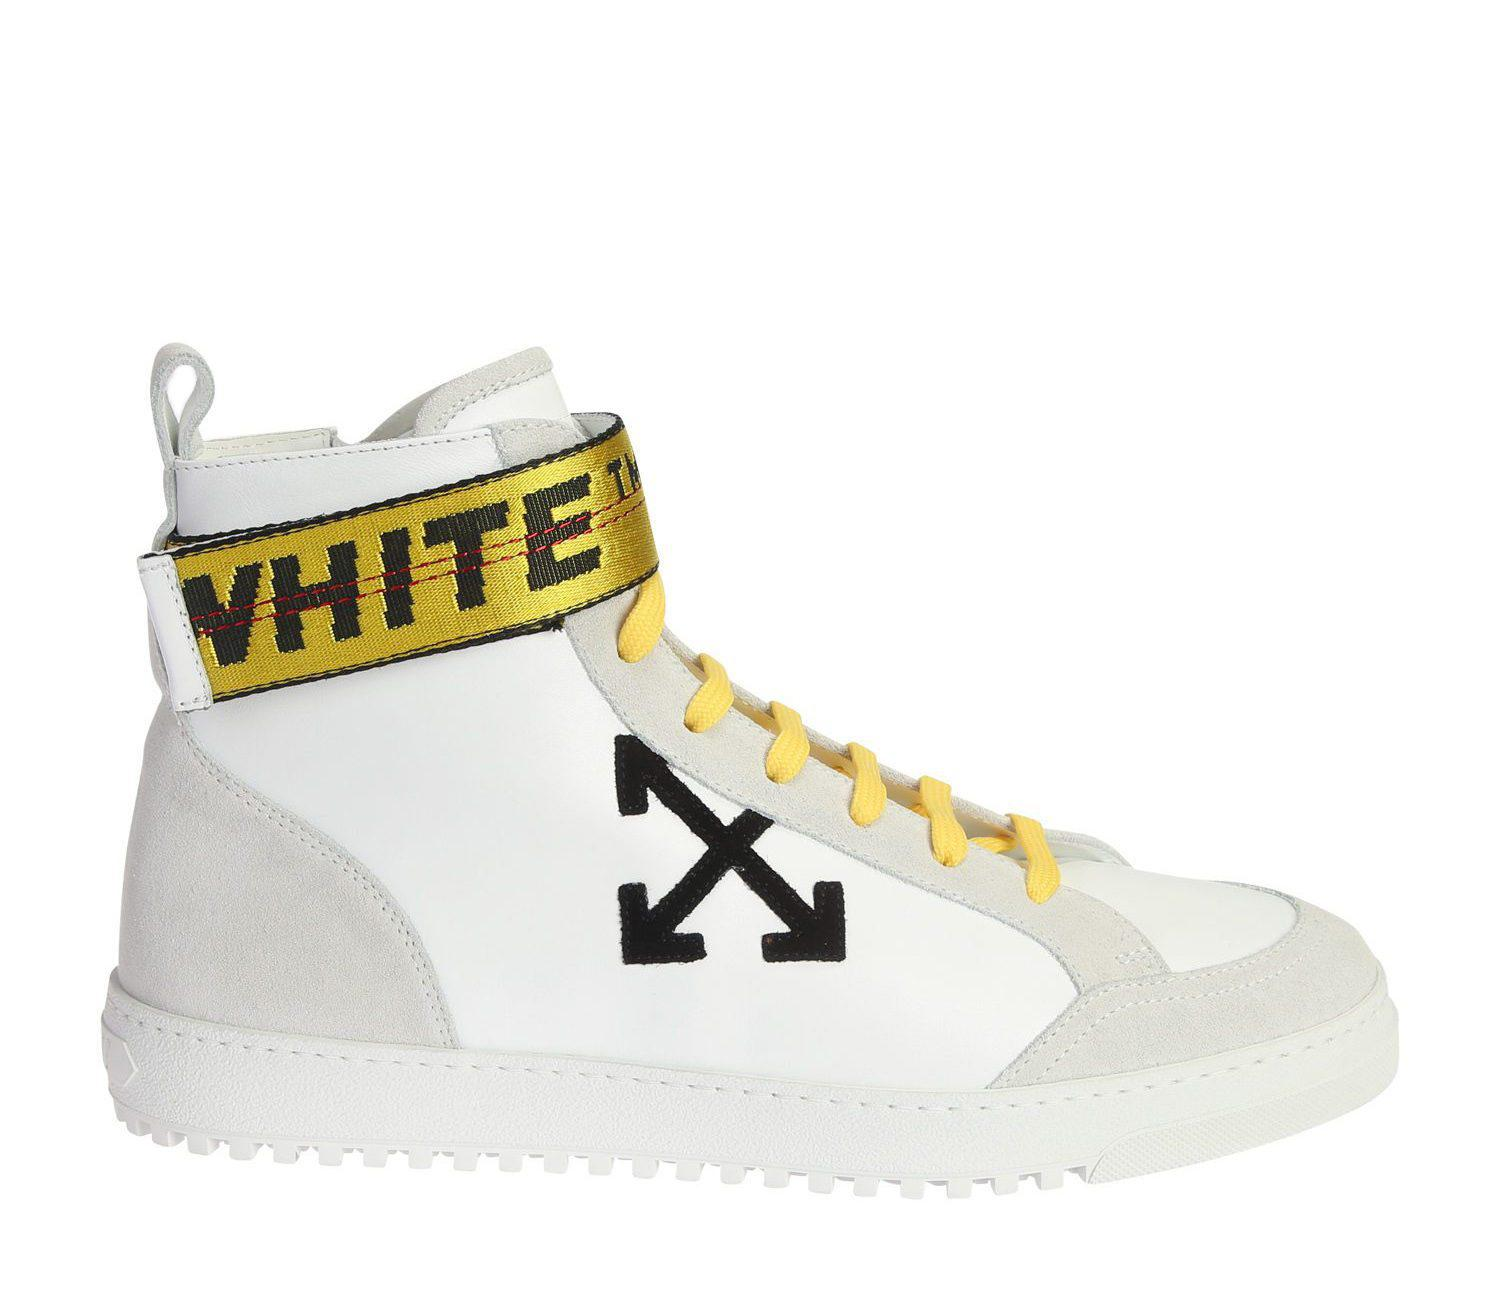 8dc8e44b7918 Off-White c o Virgil Abloh Security High-top Leather Sneakers in ...